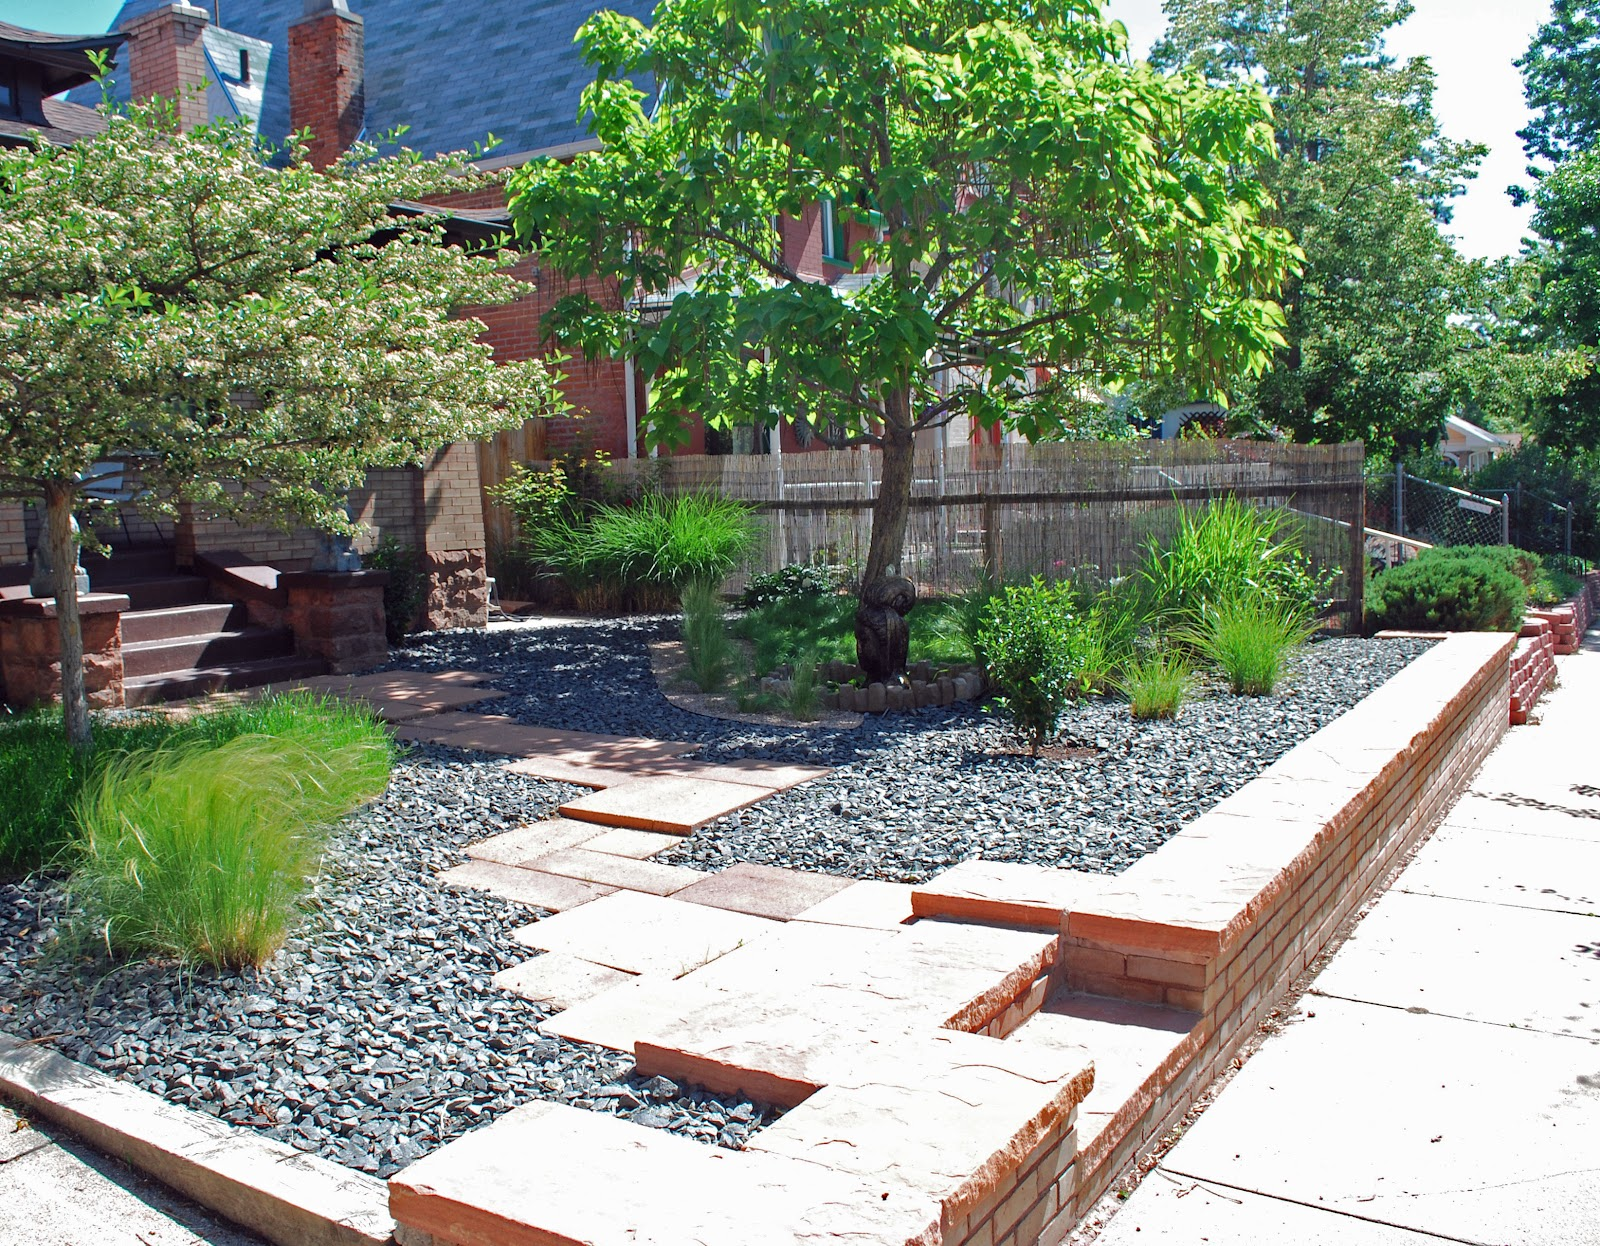 Landscape design focus low maintenance garden share bristol for No maintenance front yard